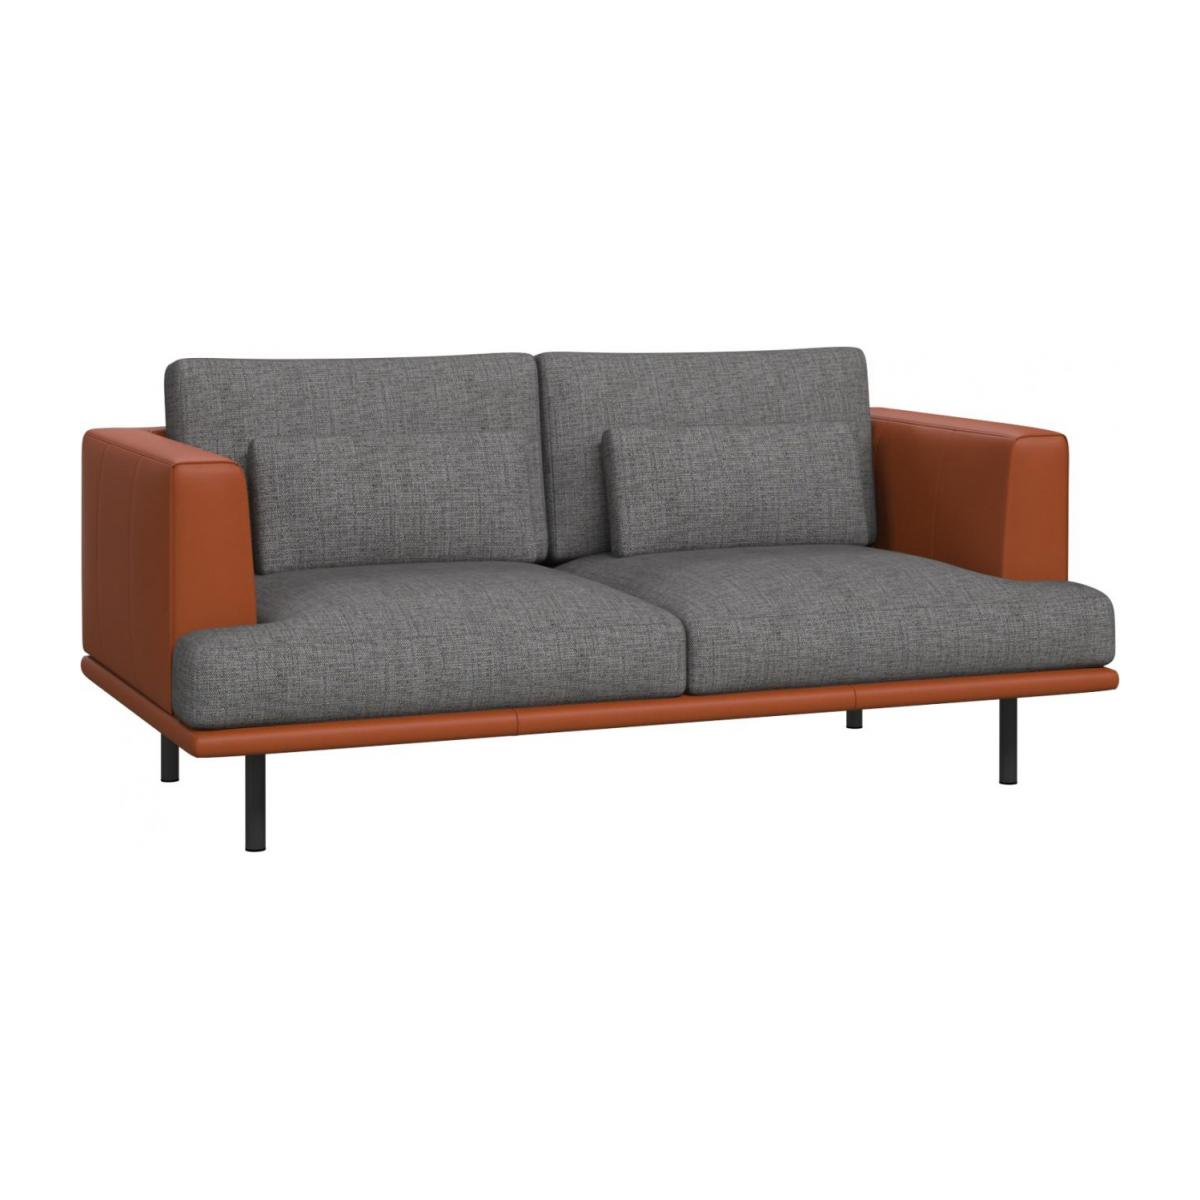 2-seter sofa Ancio river rock med base og vanger i brun skinn n°1